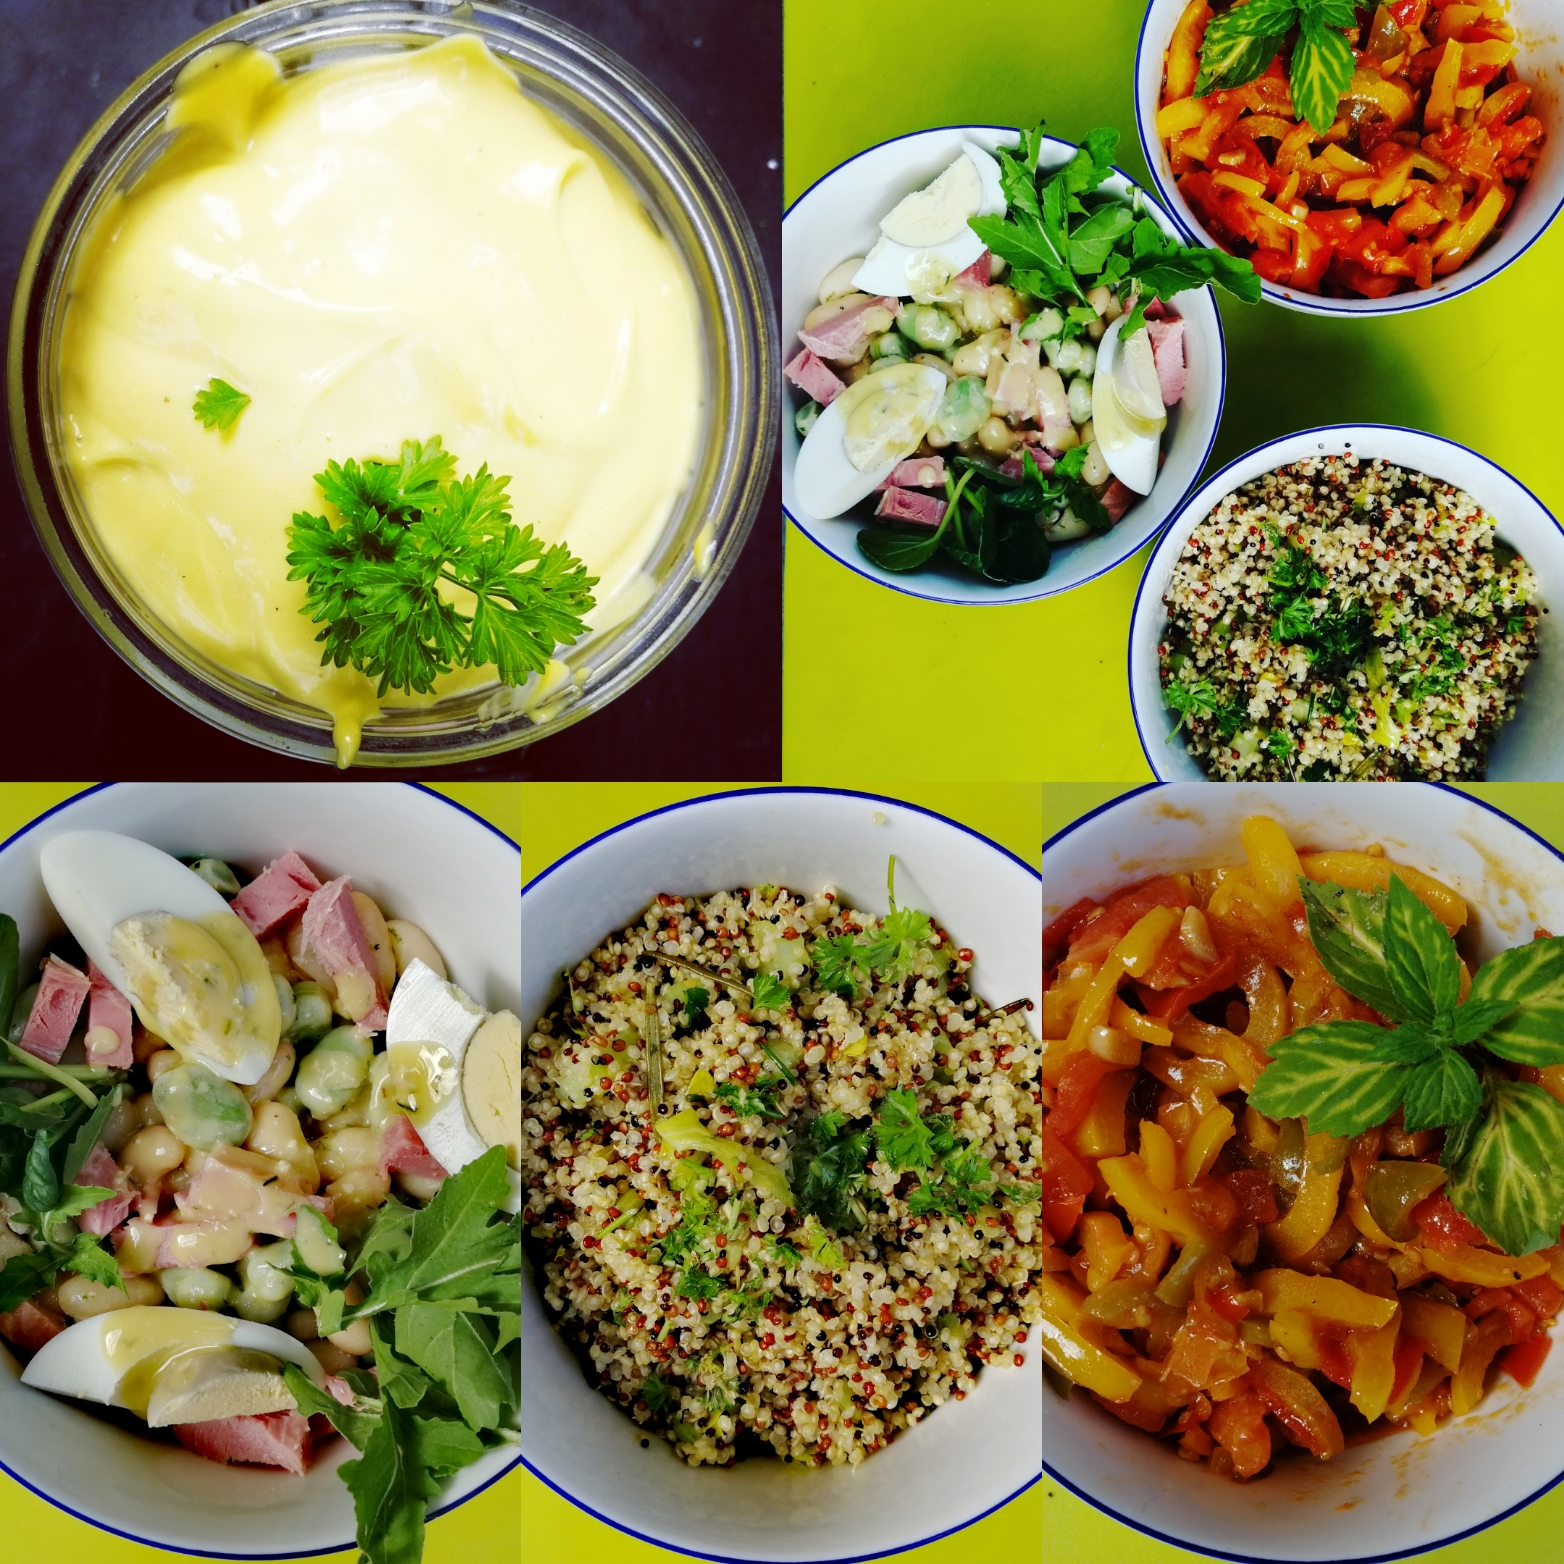 Freshly prepared, homemade salads, grains, beans, fruits, veg, dressings